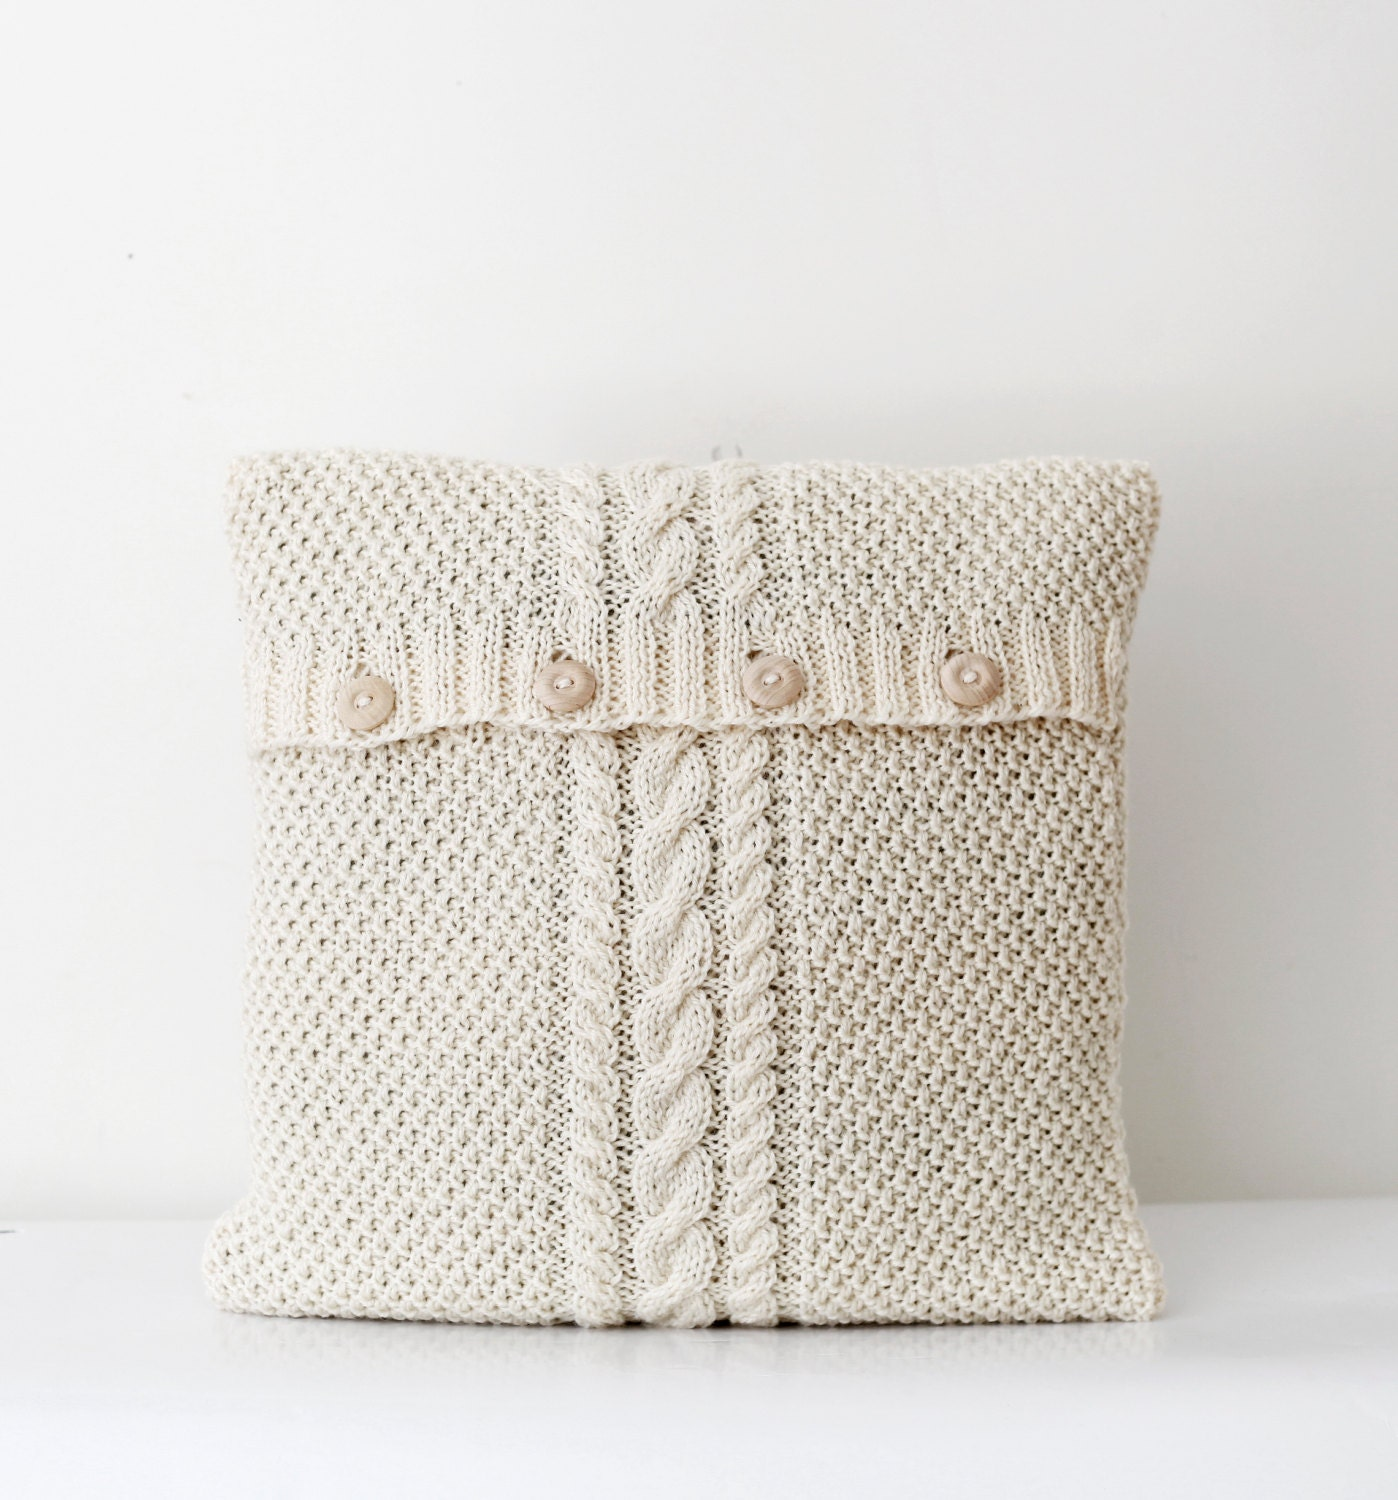 Cable hand knitted new pillow cover white milk decorative